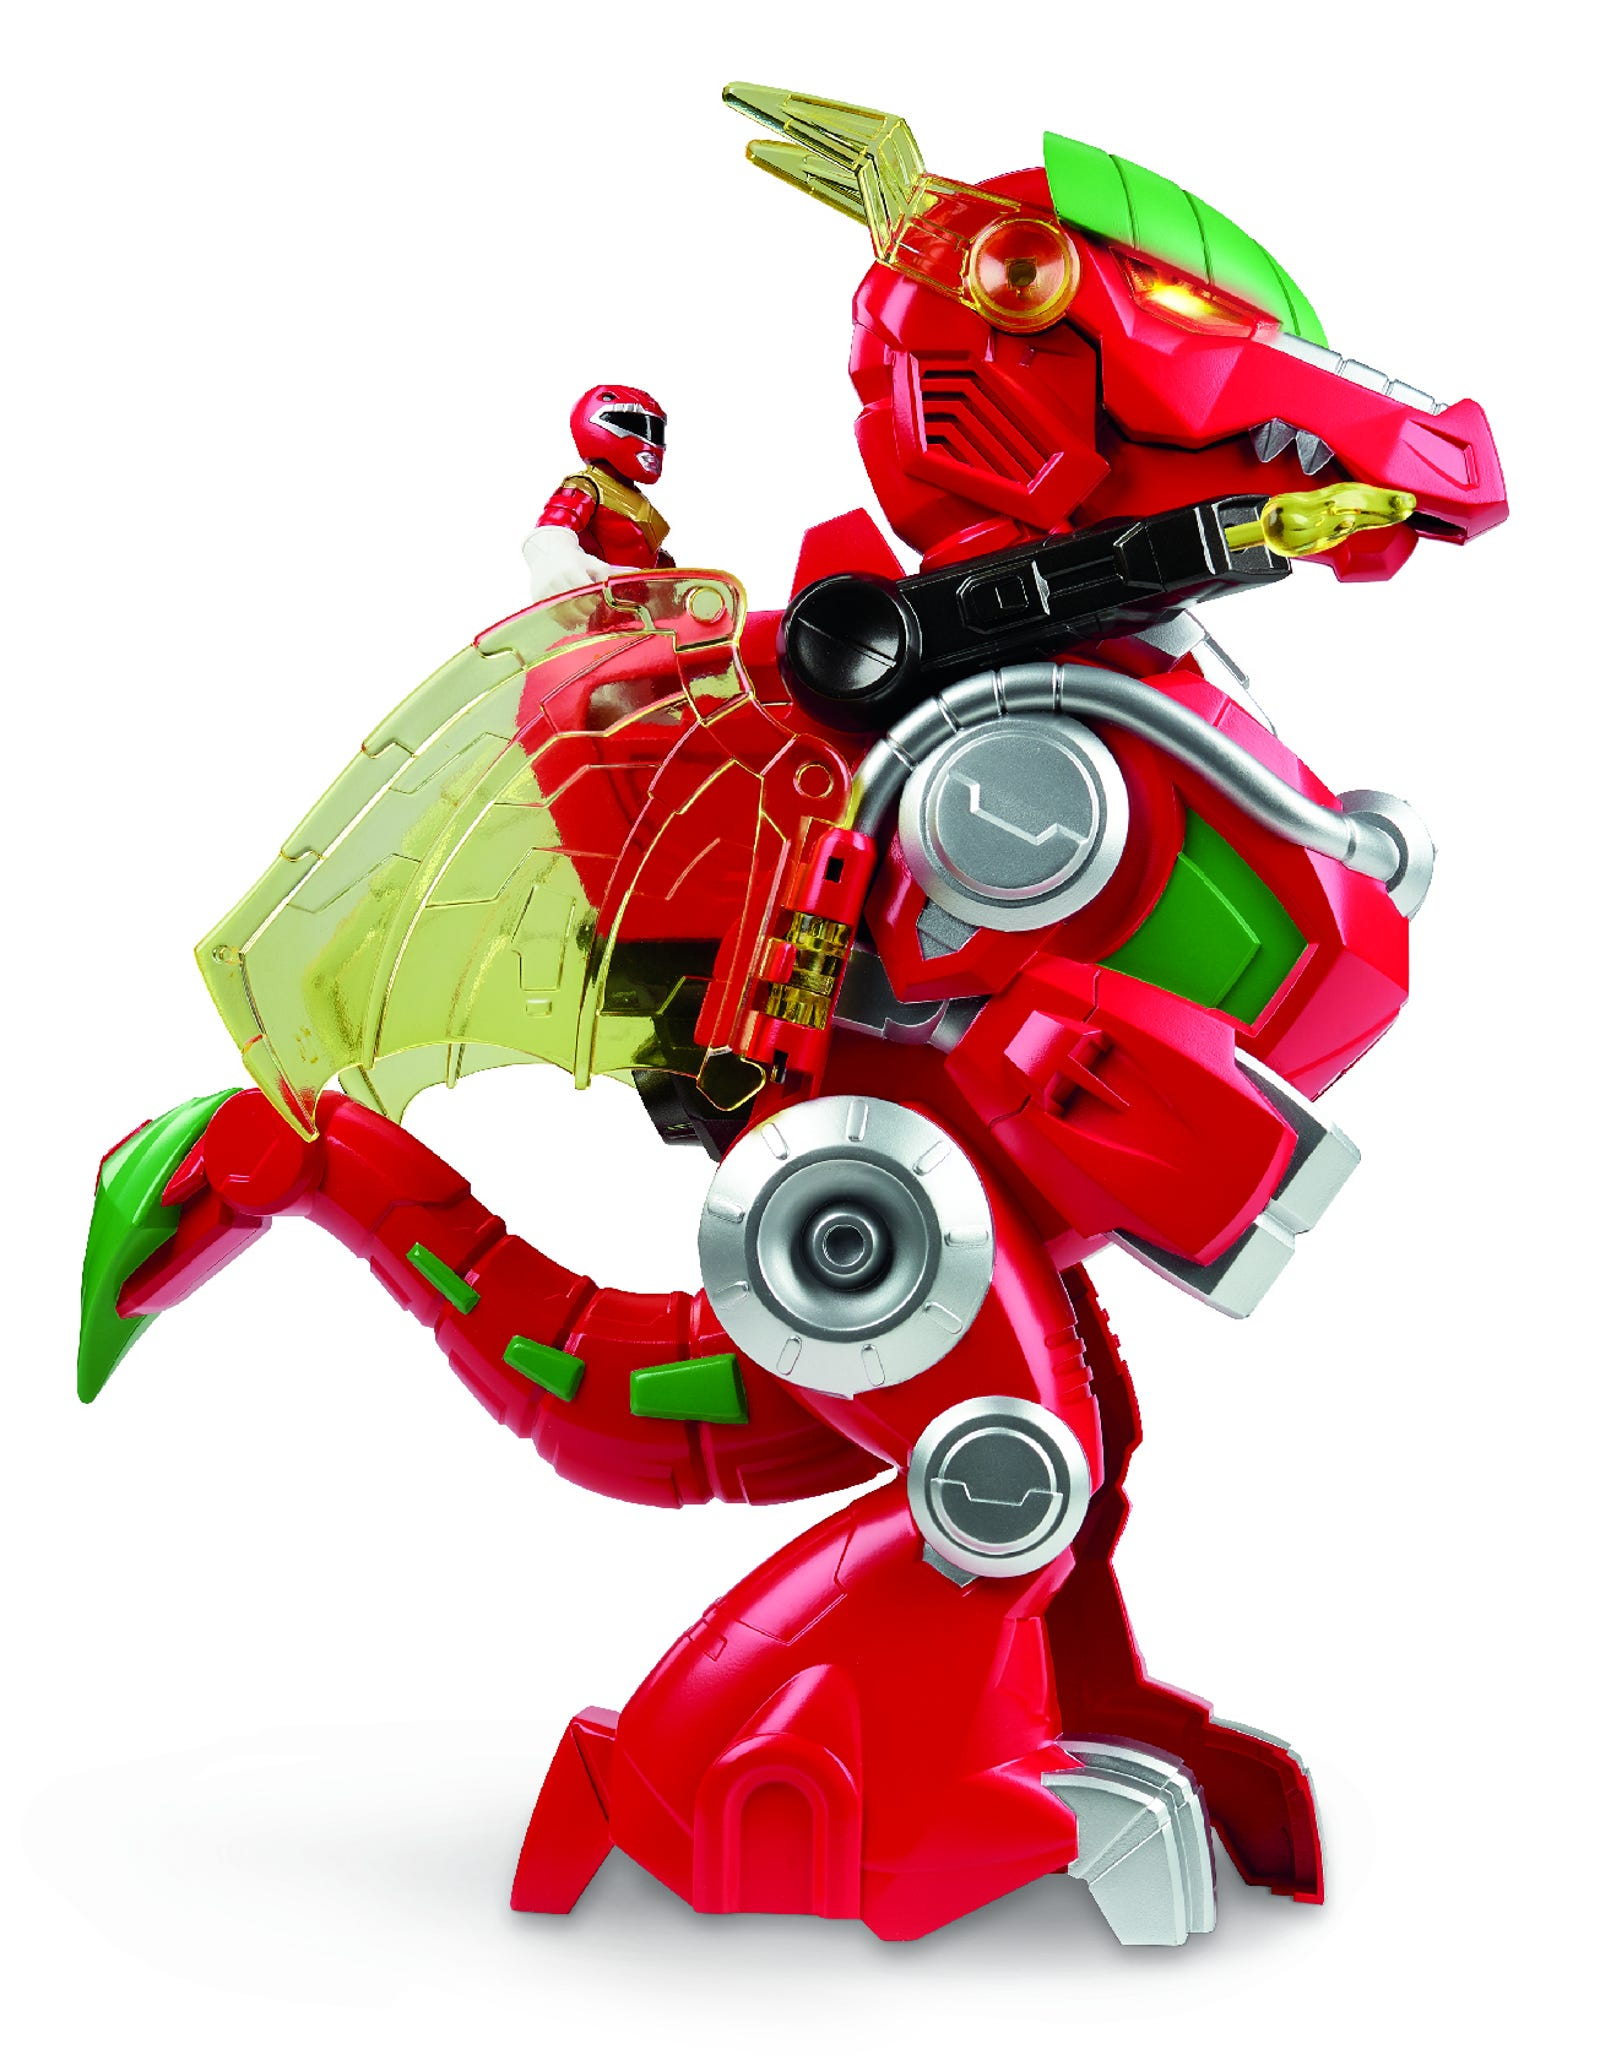 Playskool Heroes' Power Rangers Dragon Thunderzord, complete with Dragon Shield Red Ranger figure.